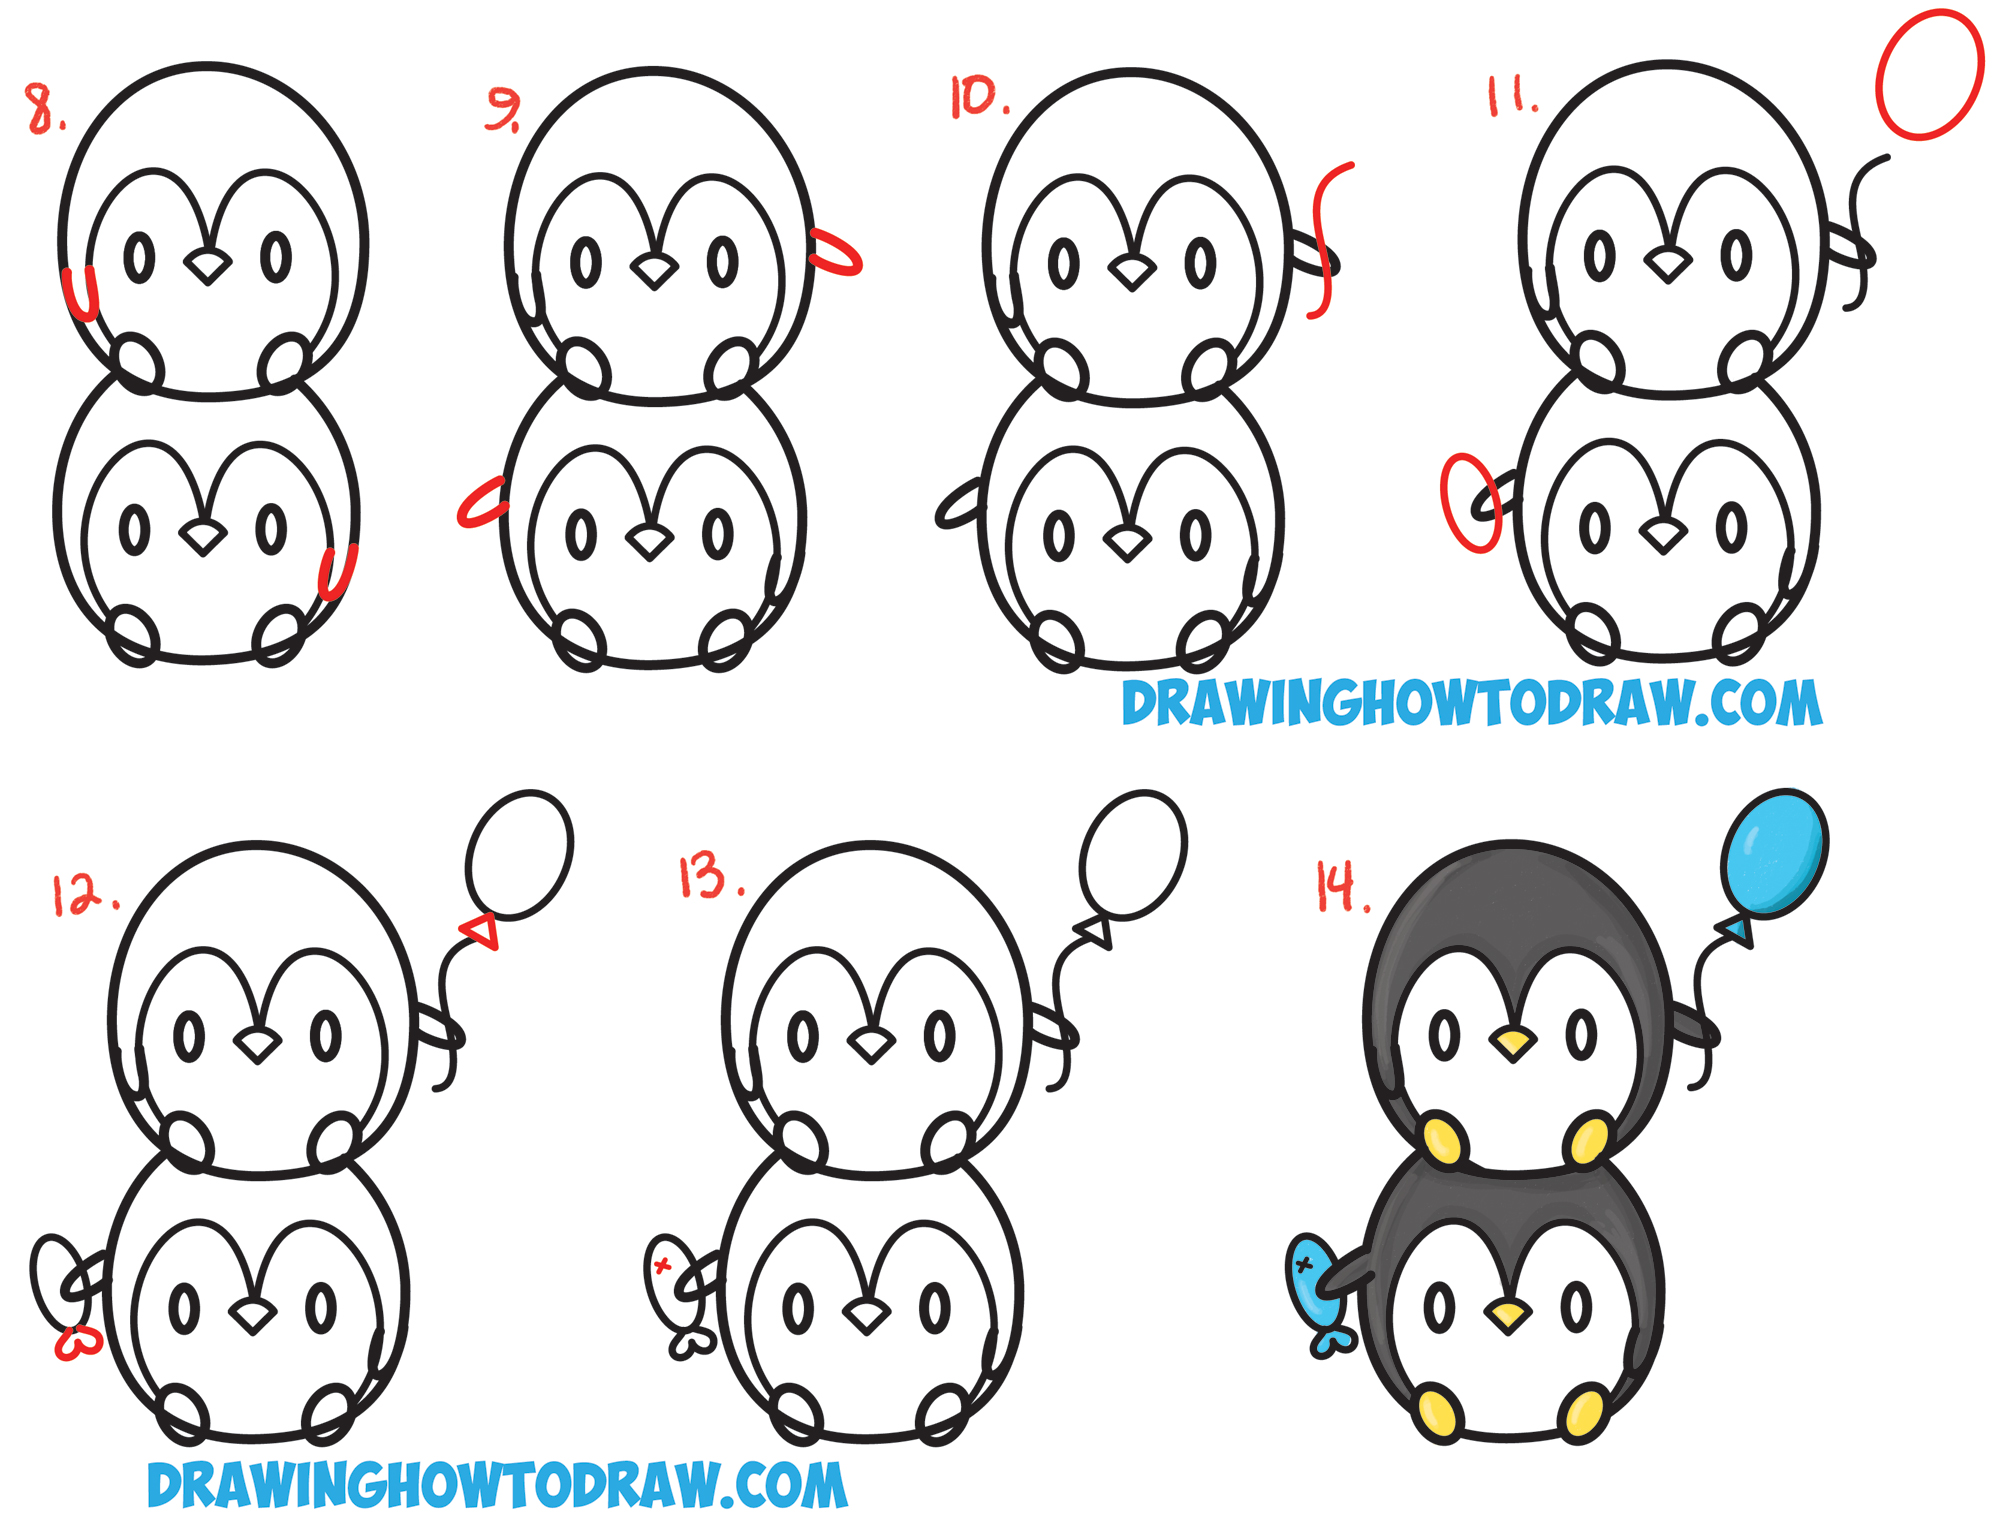 Learn How to Draw Cute Kawaii / Chibi / Baby Penguins Stacked from Numbers with Simple Steps Drawing Lesson for Kids